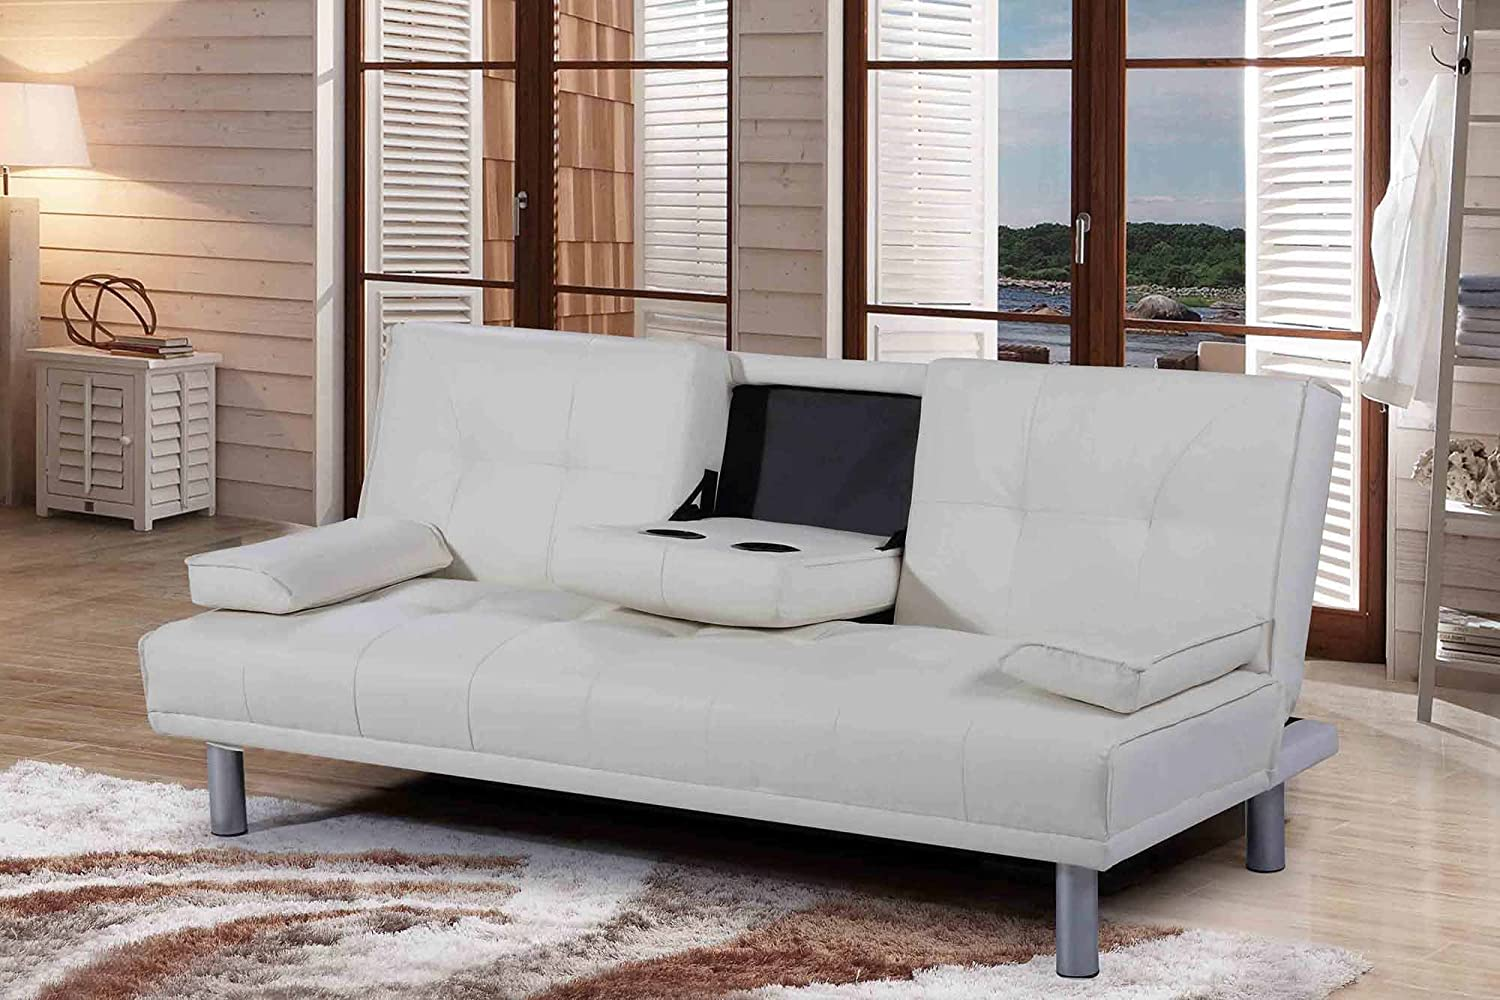 Modern leather sofa bed - New Sleep Design Manhattan Modern Faux Leather Sofa Bed With Drinks Table Cushions Available In White Amazon Co Uk Kitchen Home